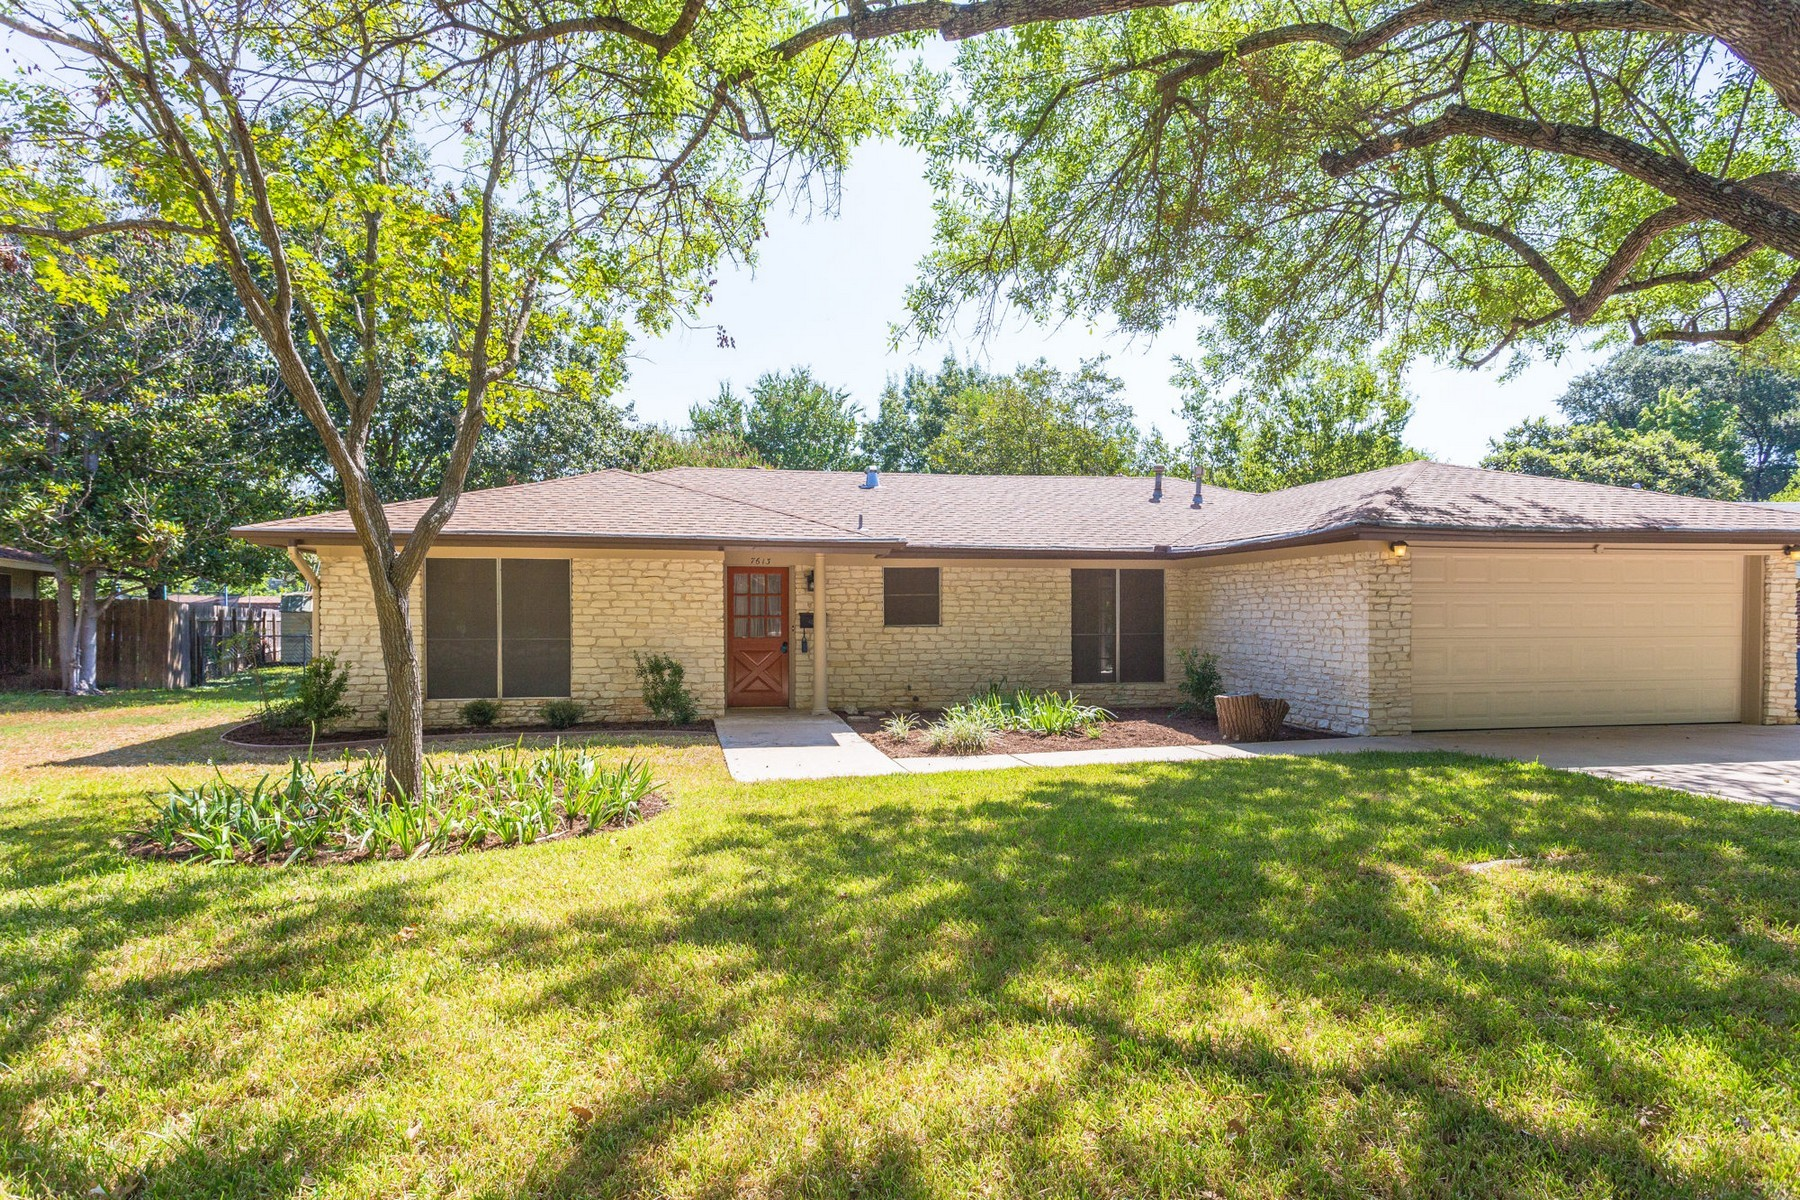 Single Family Home for Sale at Mid-Century Ranch Home in North Central Austin 7613 Shoal Creek Blvd Austin, Texas 78757 United States